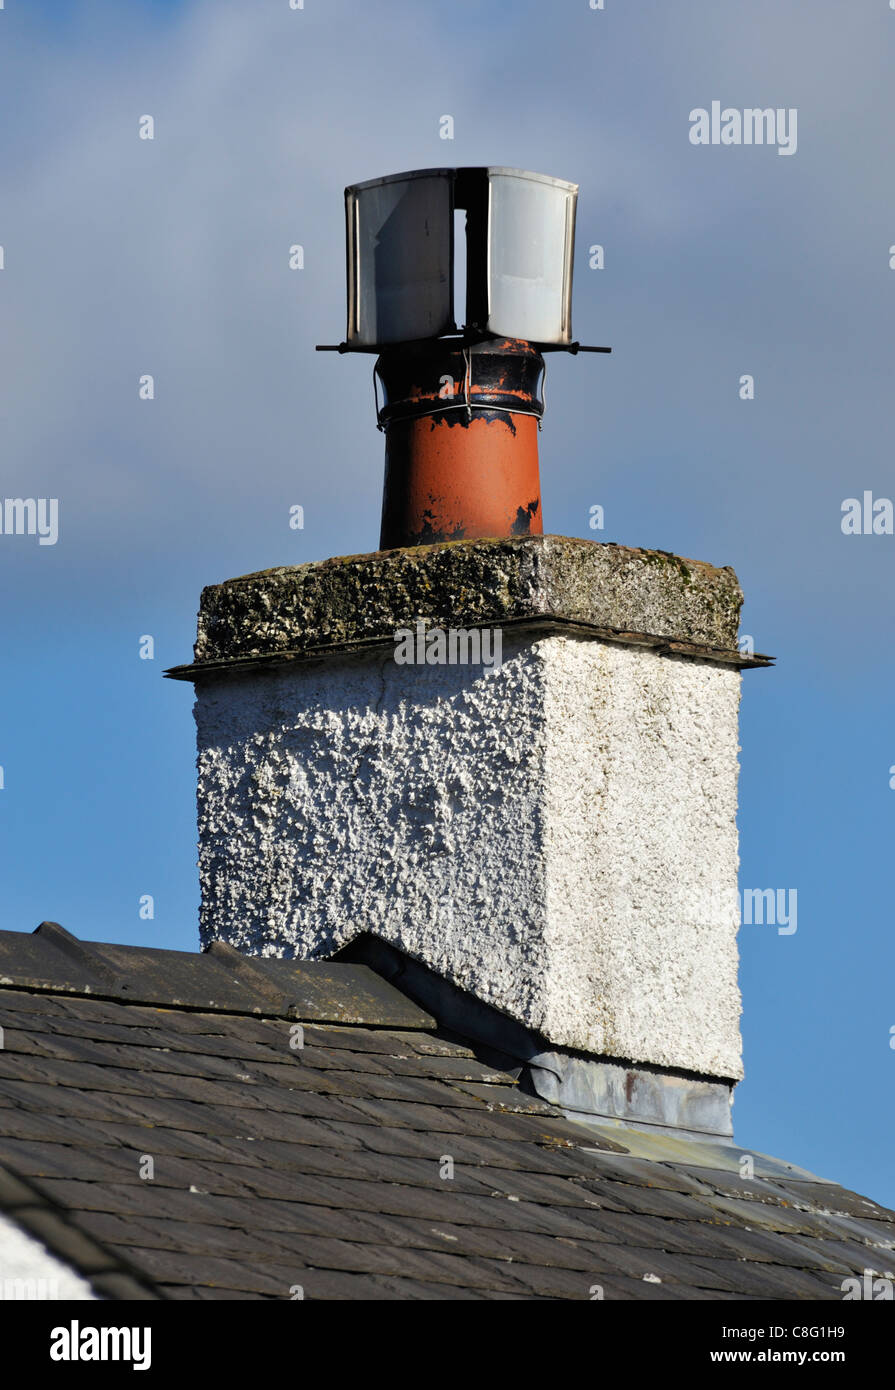 Chimney Cowl Stock Photos Amp Chimney Cowl Stock Images Alamy